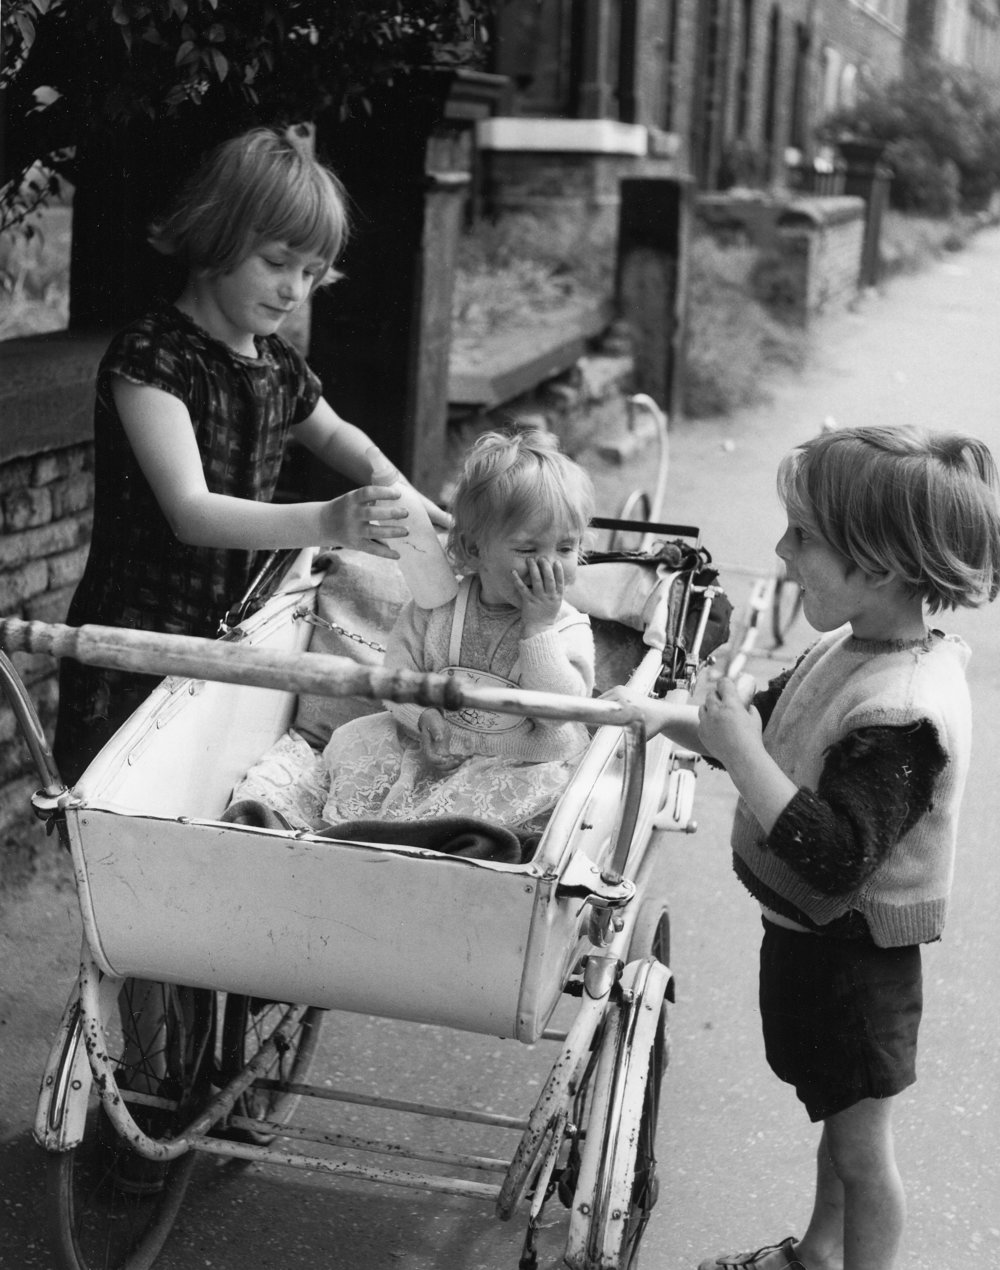 Cheetham, Mcr., 2 girls & baby, 18-68-6, (1966).jpg